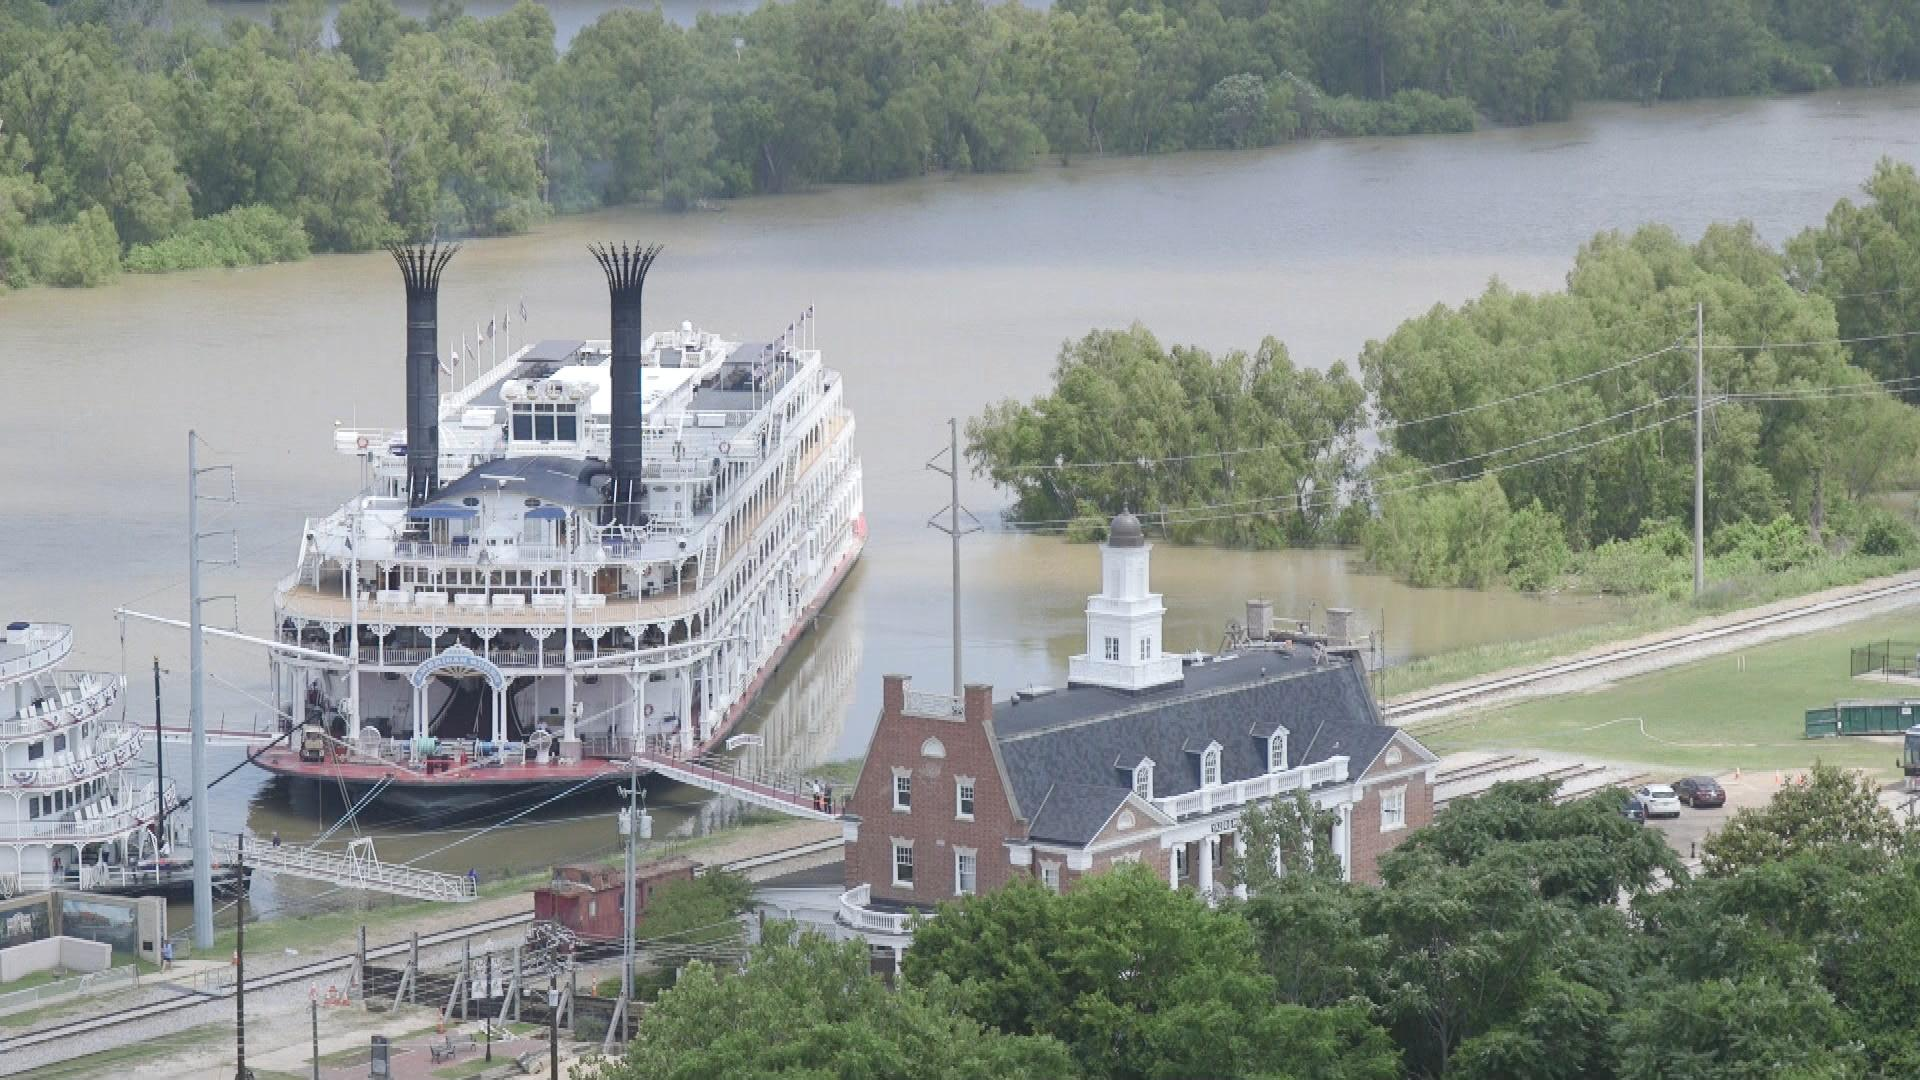 the American Queen docked along the Mississippi